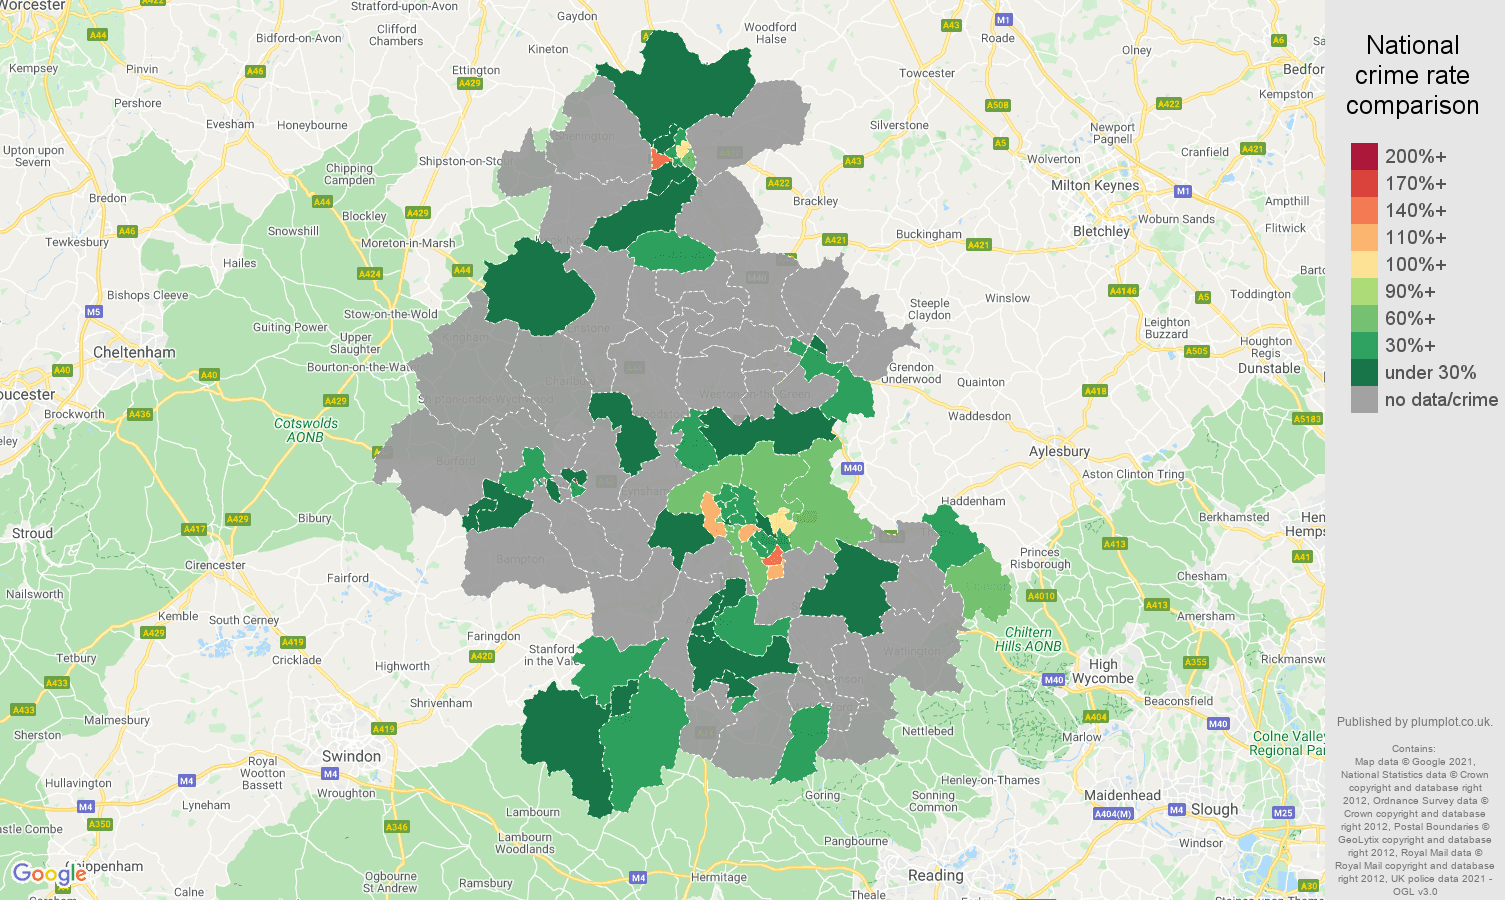 Oxford robbery crime rate comparison map